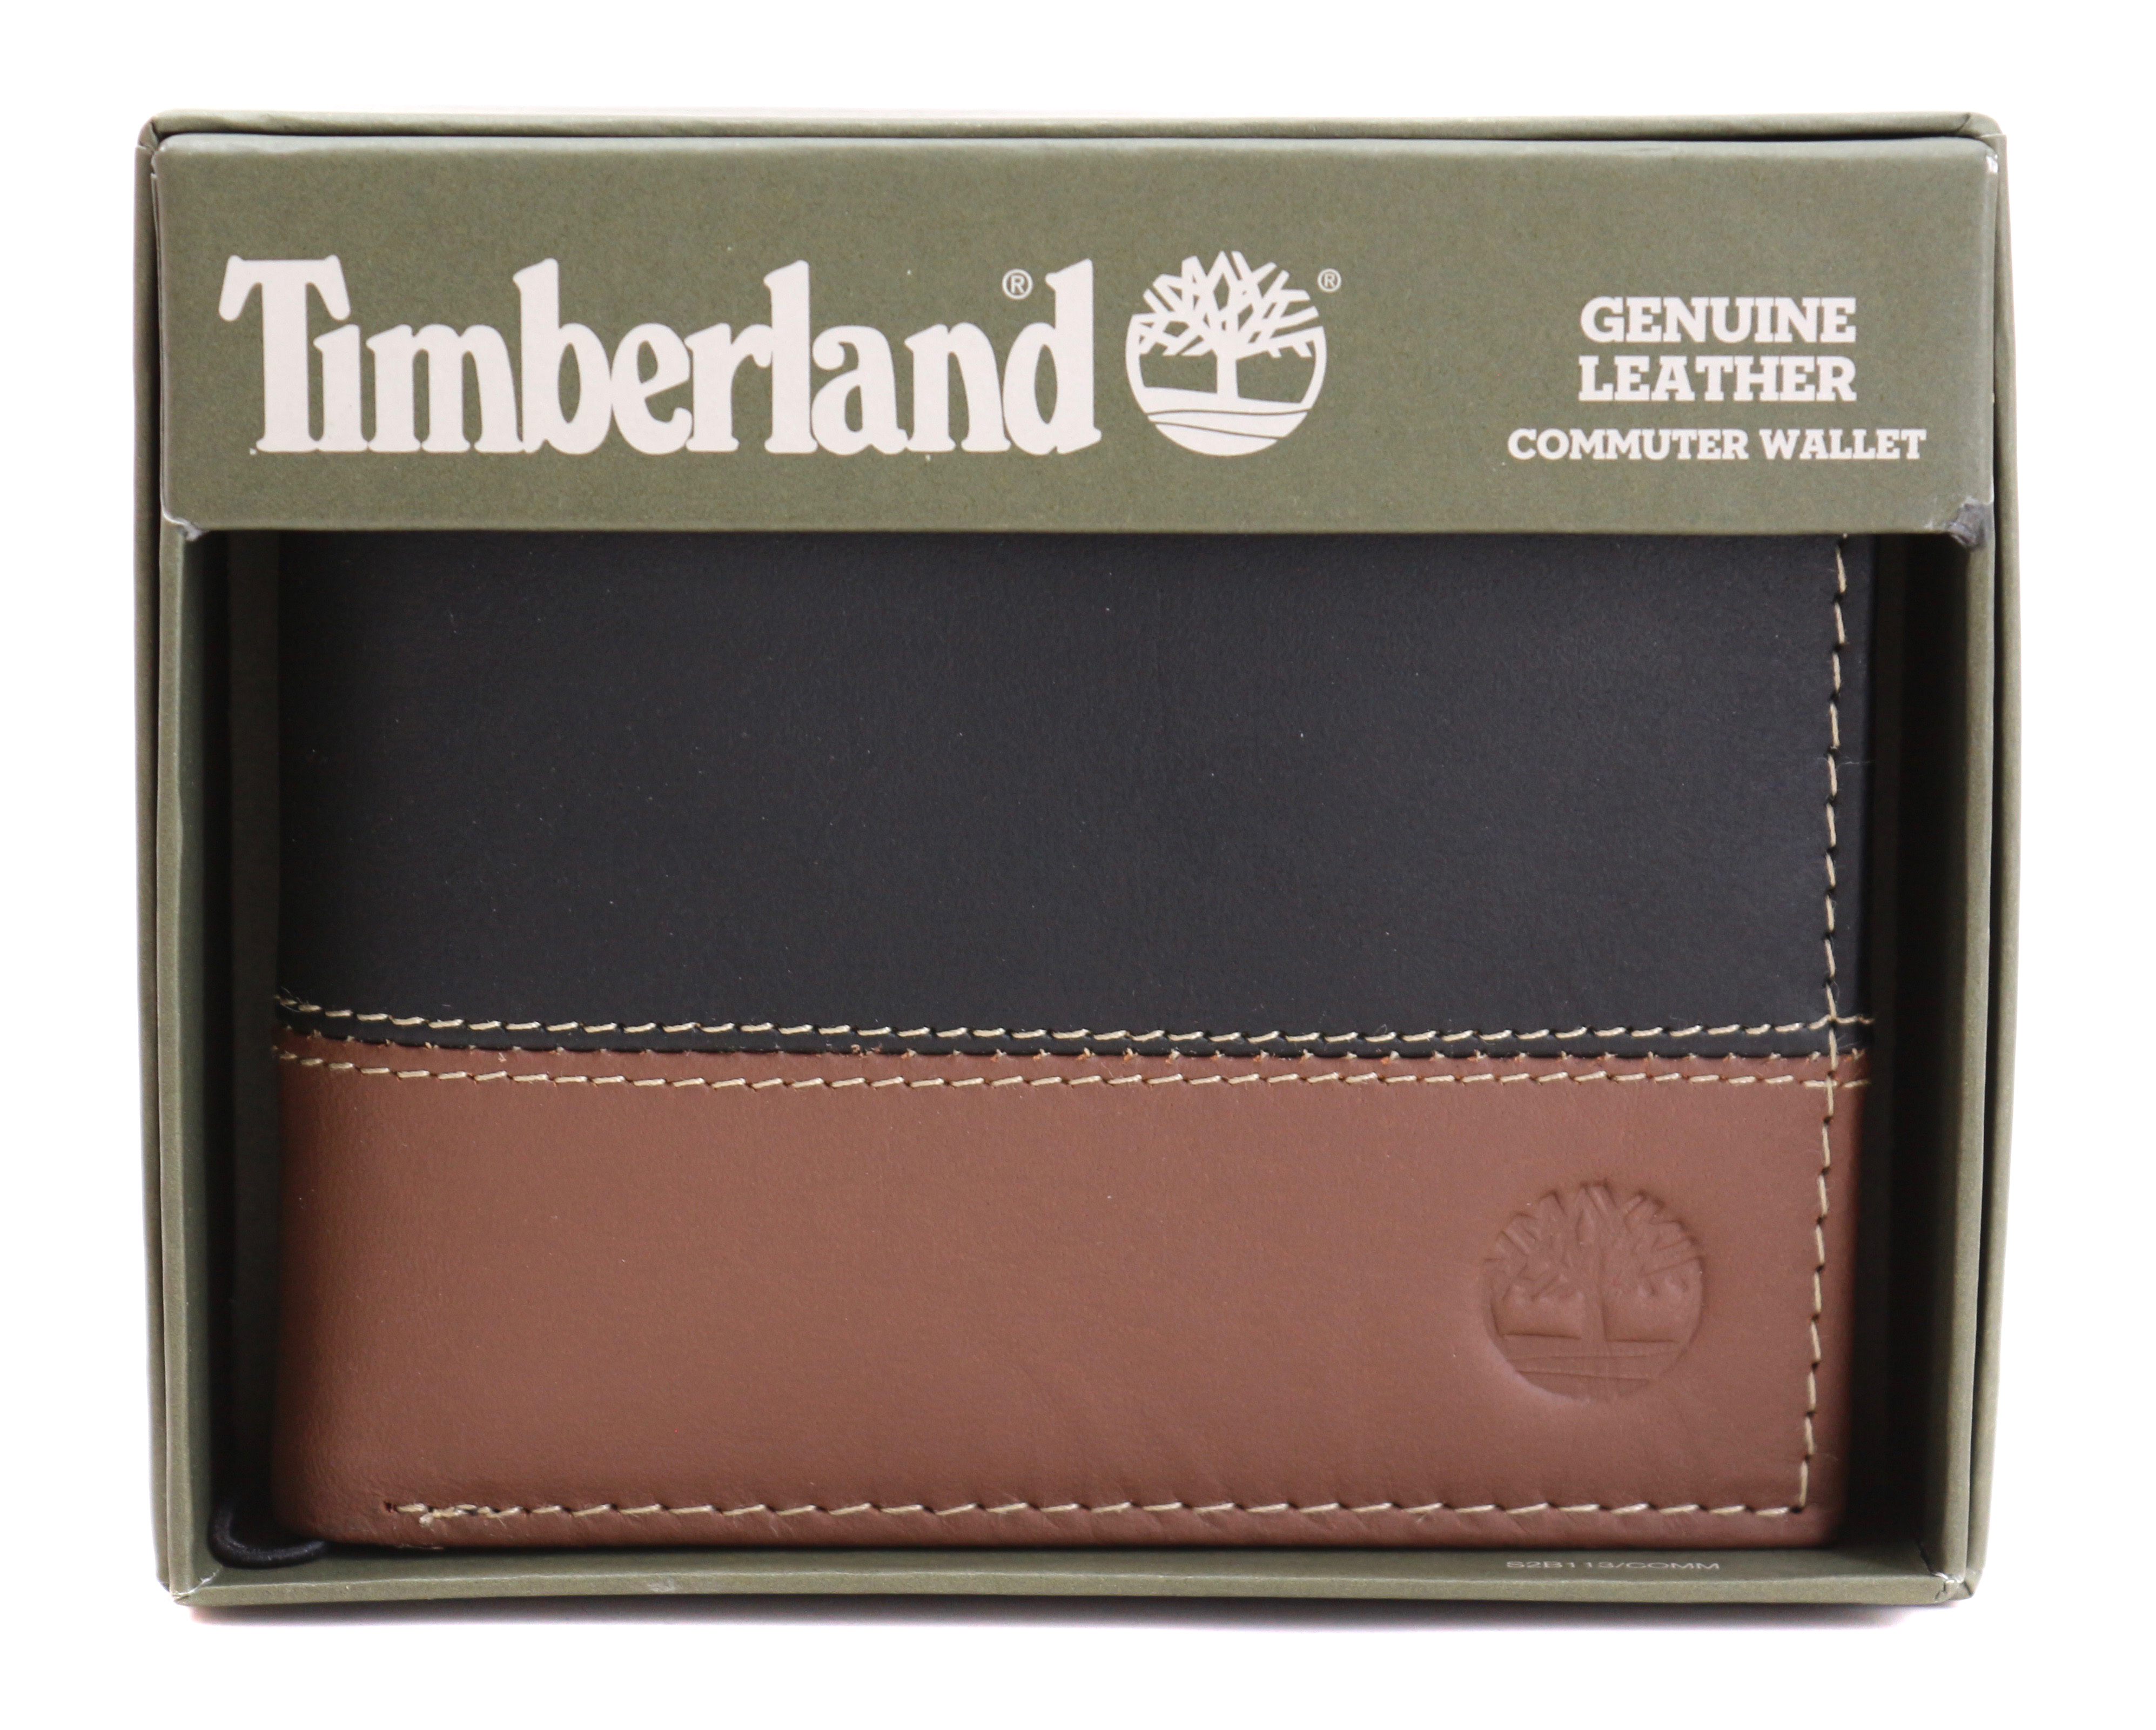 Timberland-Men-039-s-Genuine-Two-Tone-Leather-Credit-Card-Billfold-Commuter-Wallet thumbnail 17